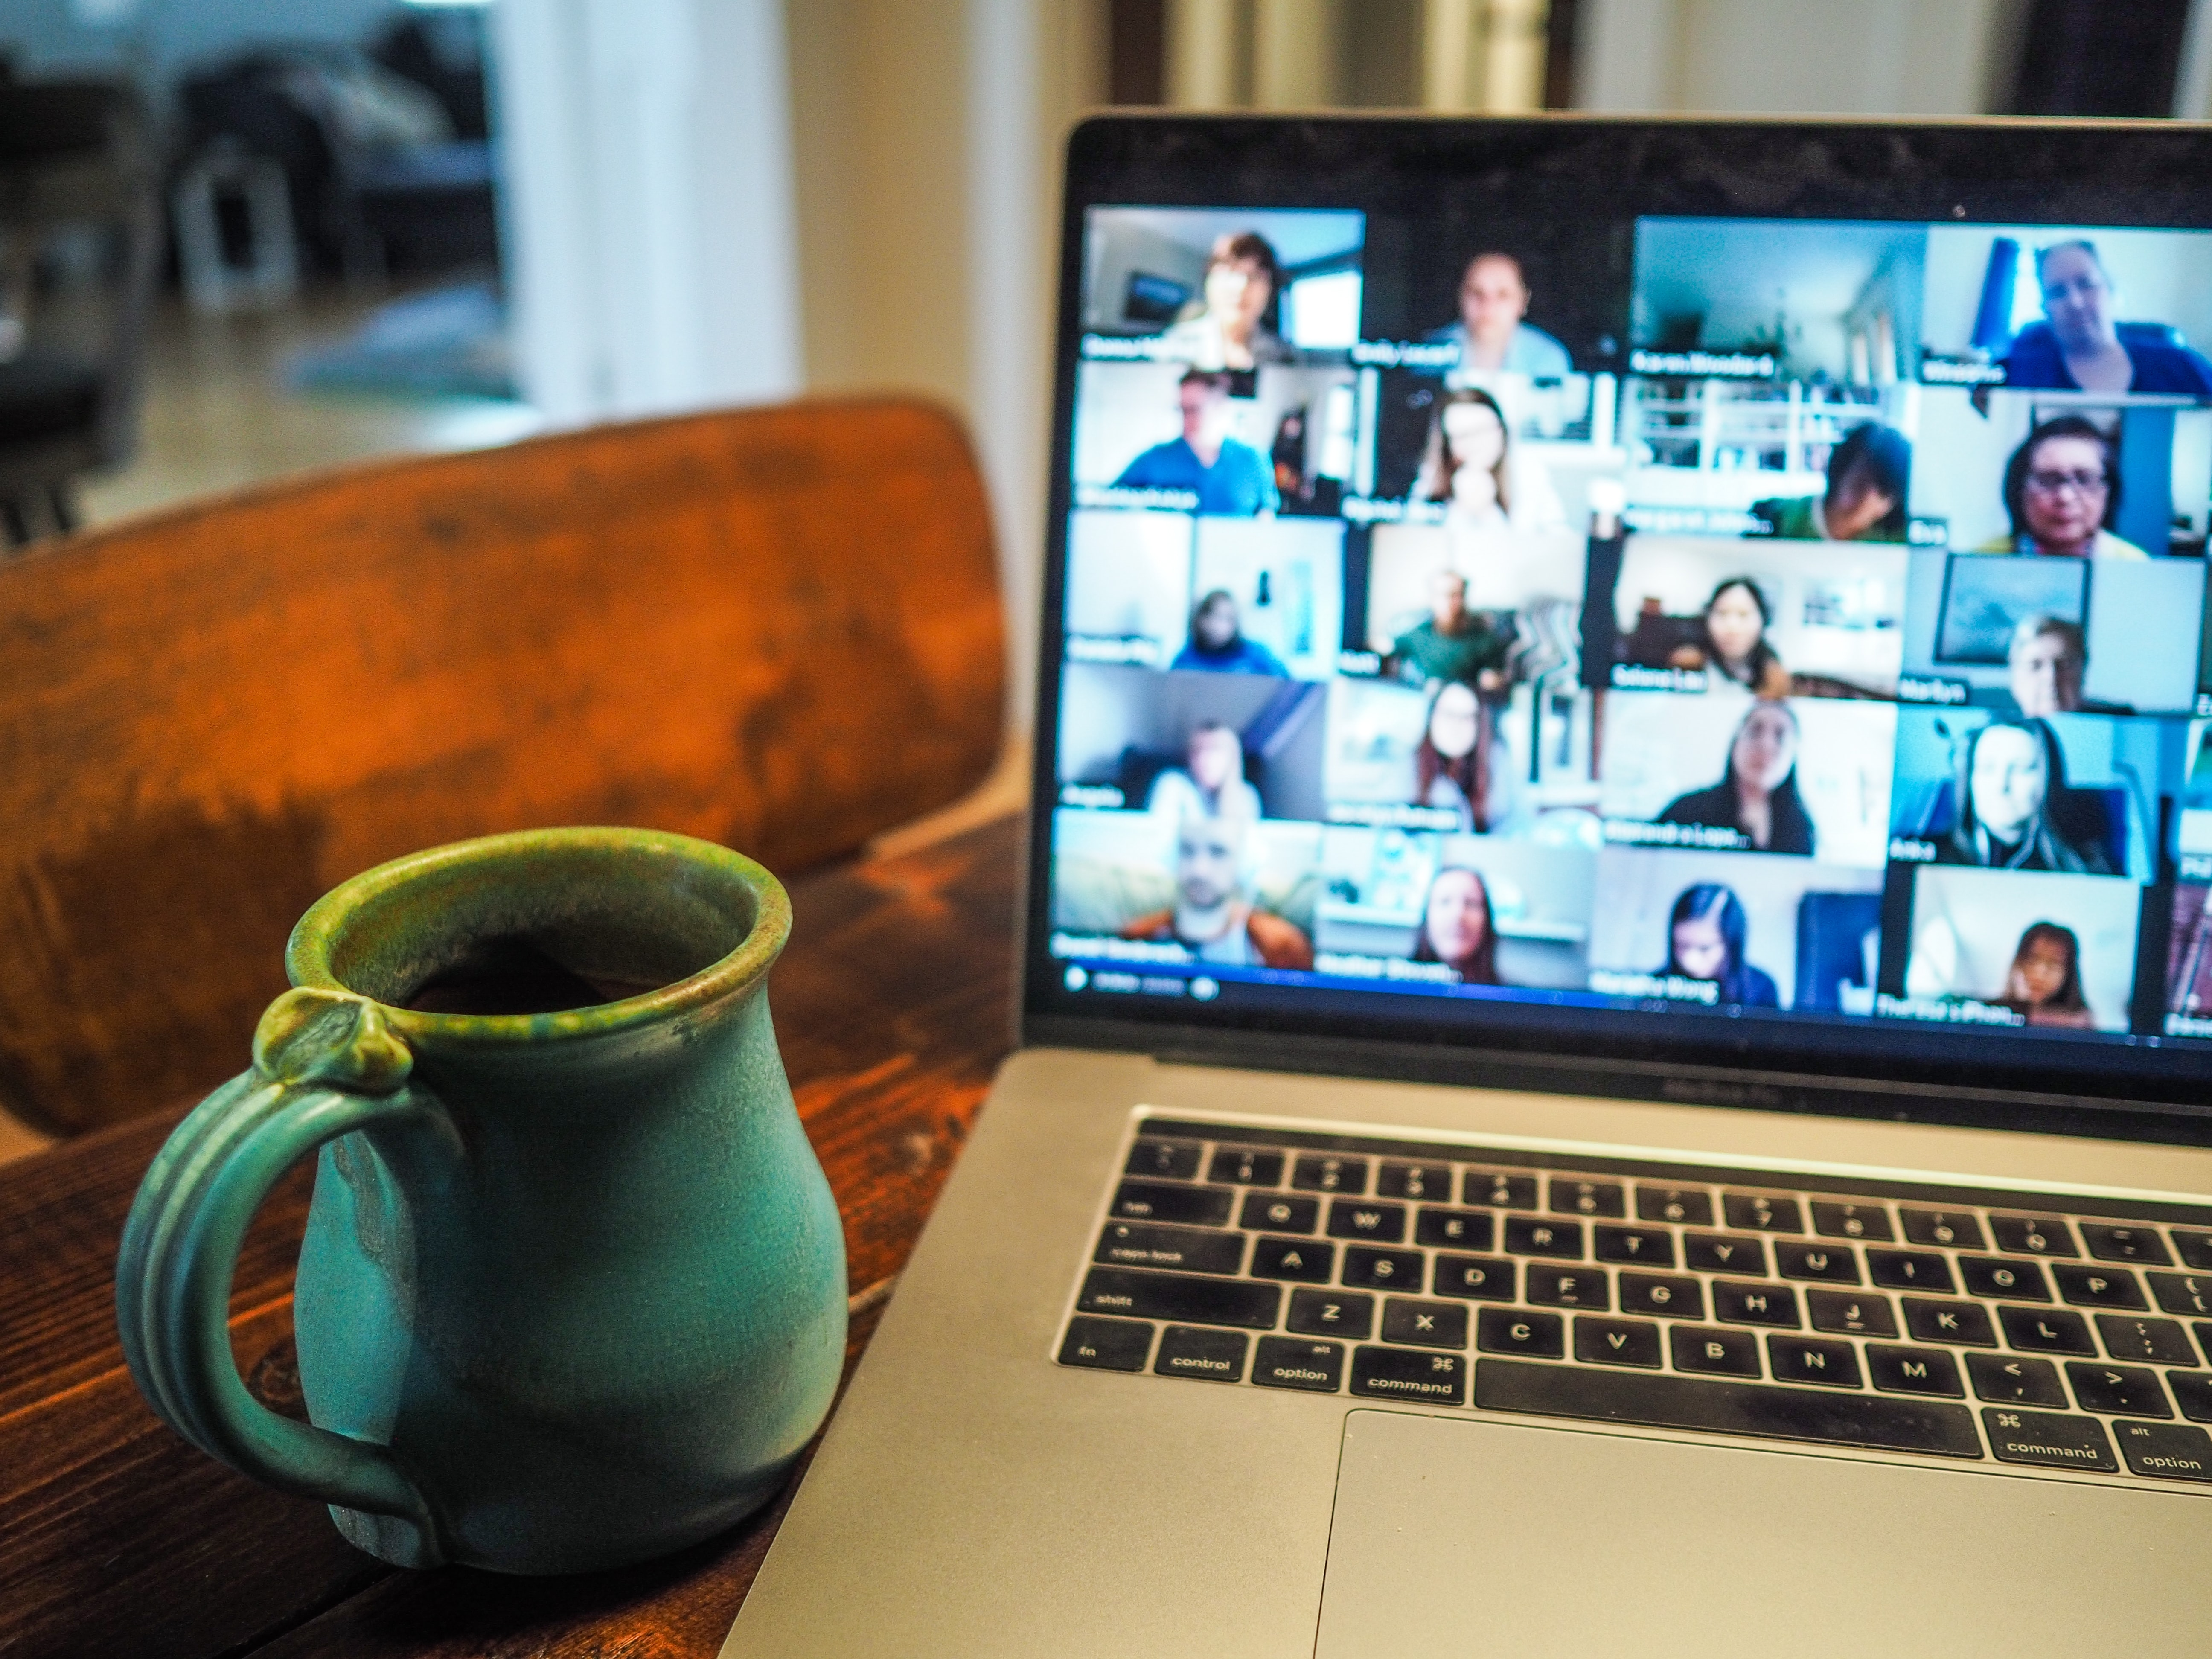 A mug on a desk, with a laptop displaying a Zoom call